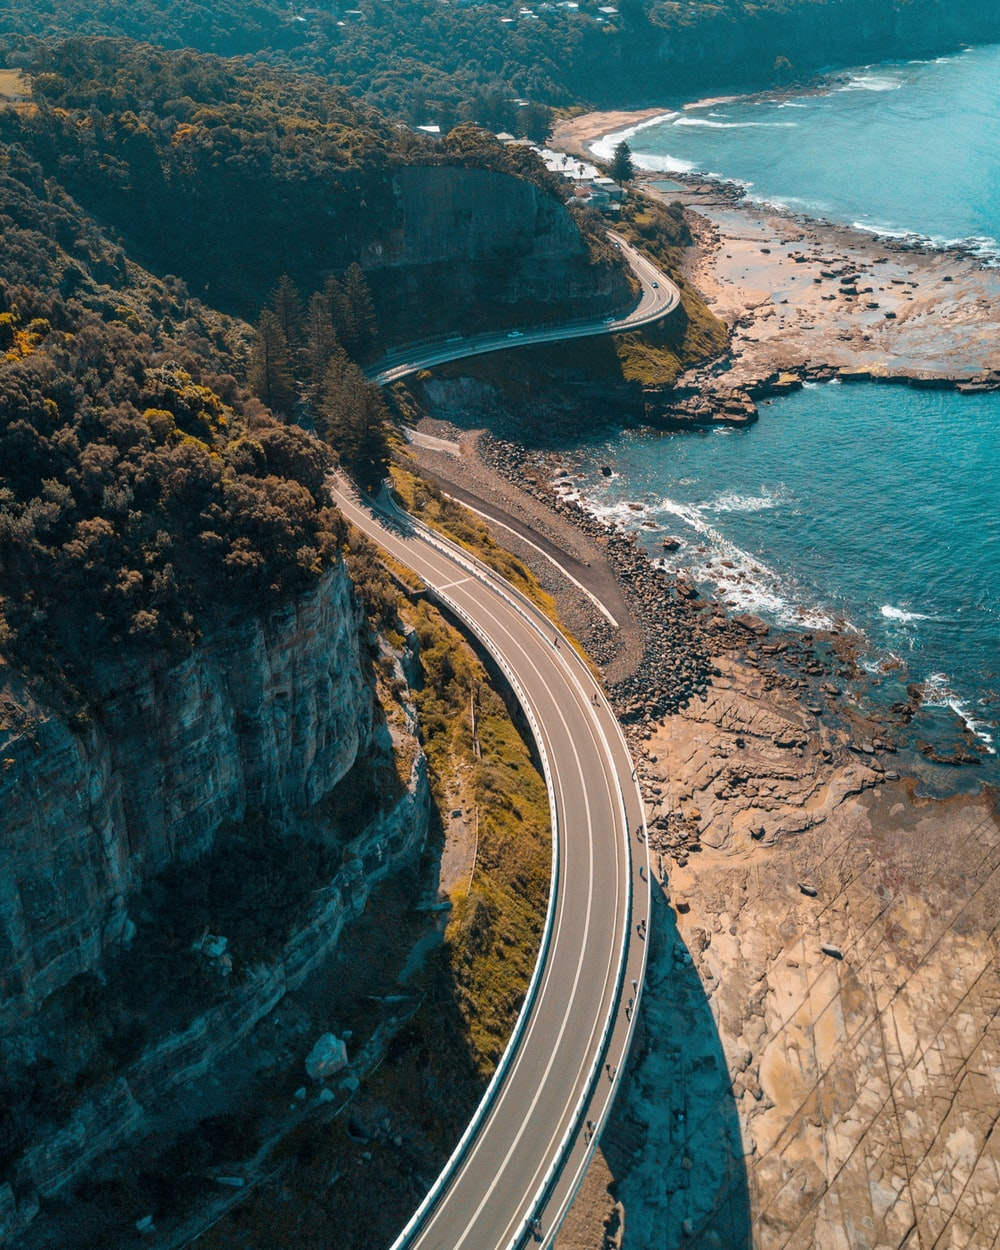 birds eye view of highway beside bay